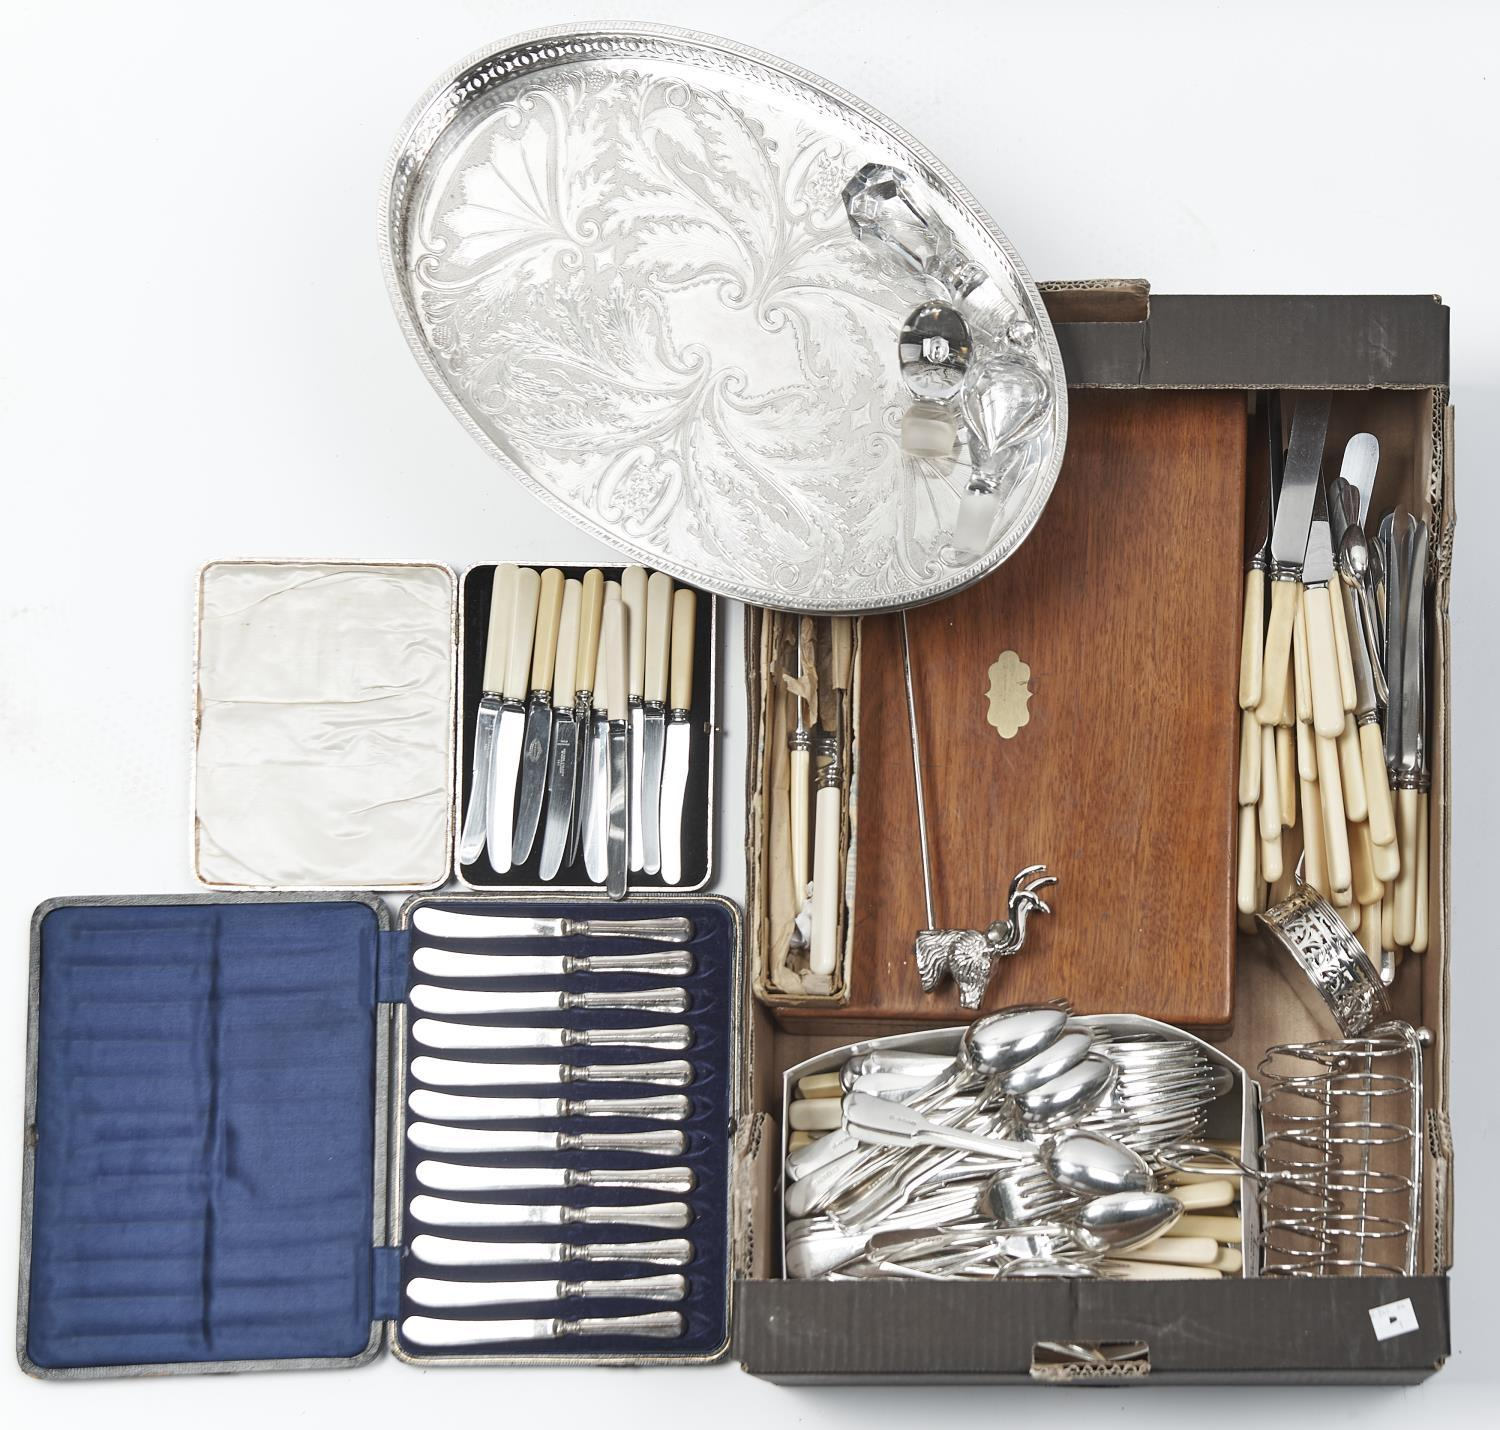 MISCELLANEOUS PLATED WARE, TO INCLUDE A CASE SET OF TWELVE SILVER HAFTED TEA KNIVES, BONE HANDLED